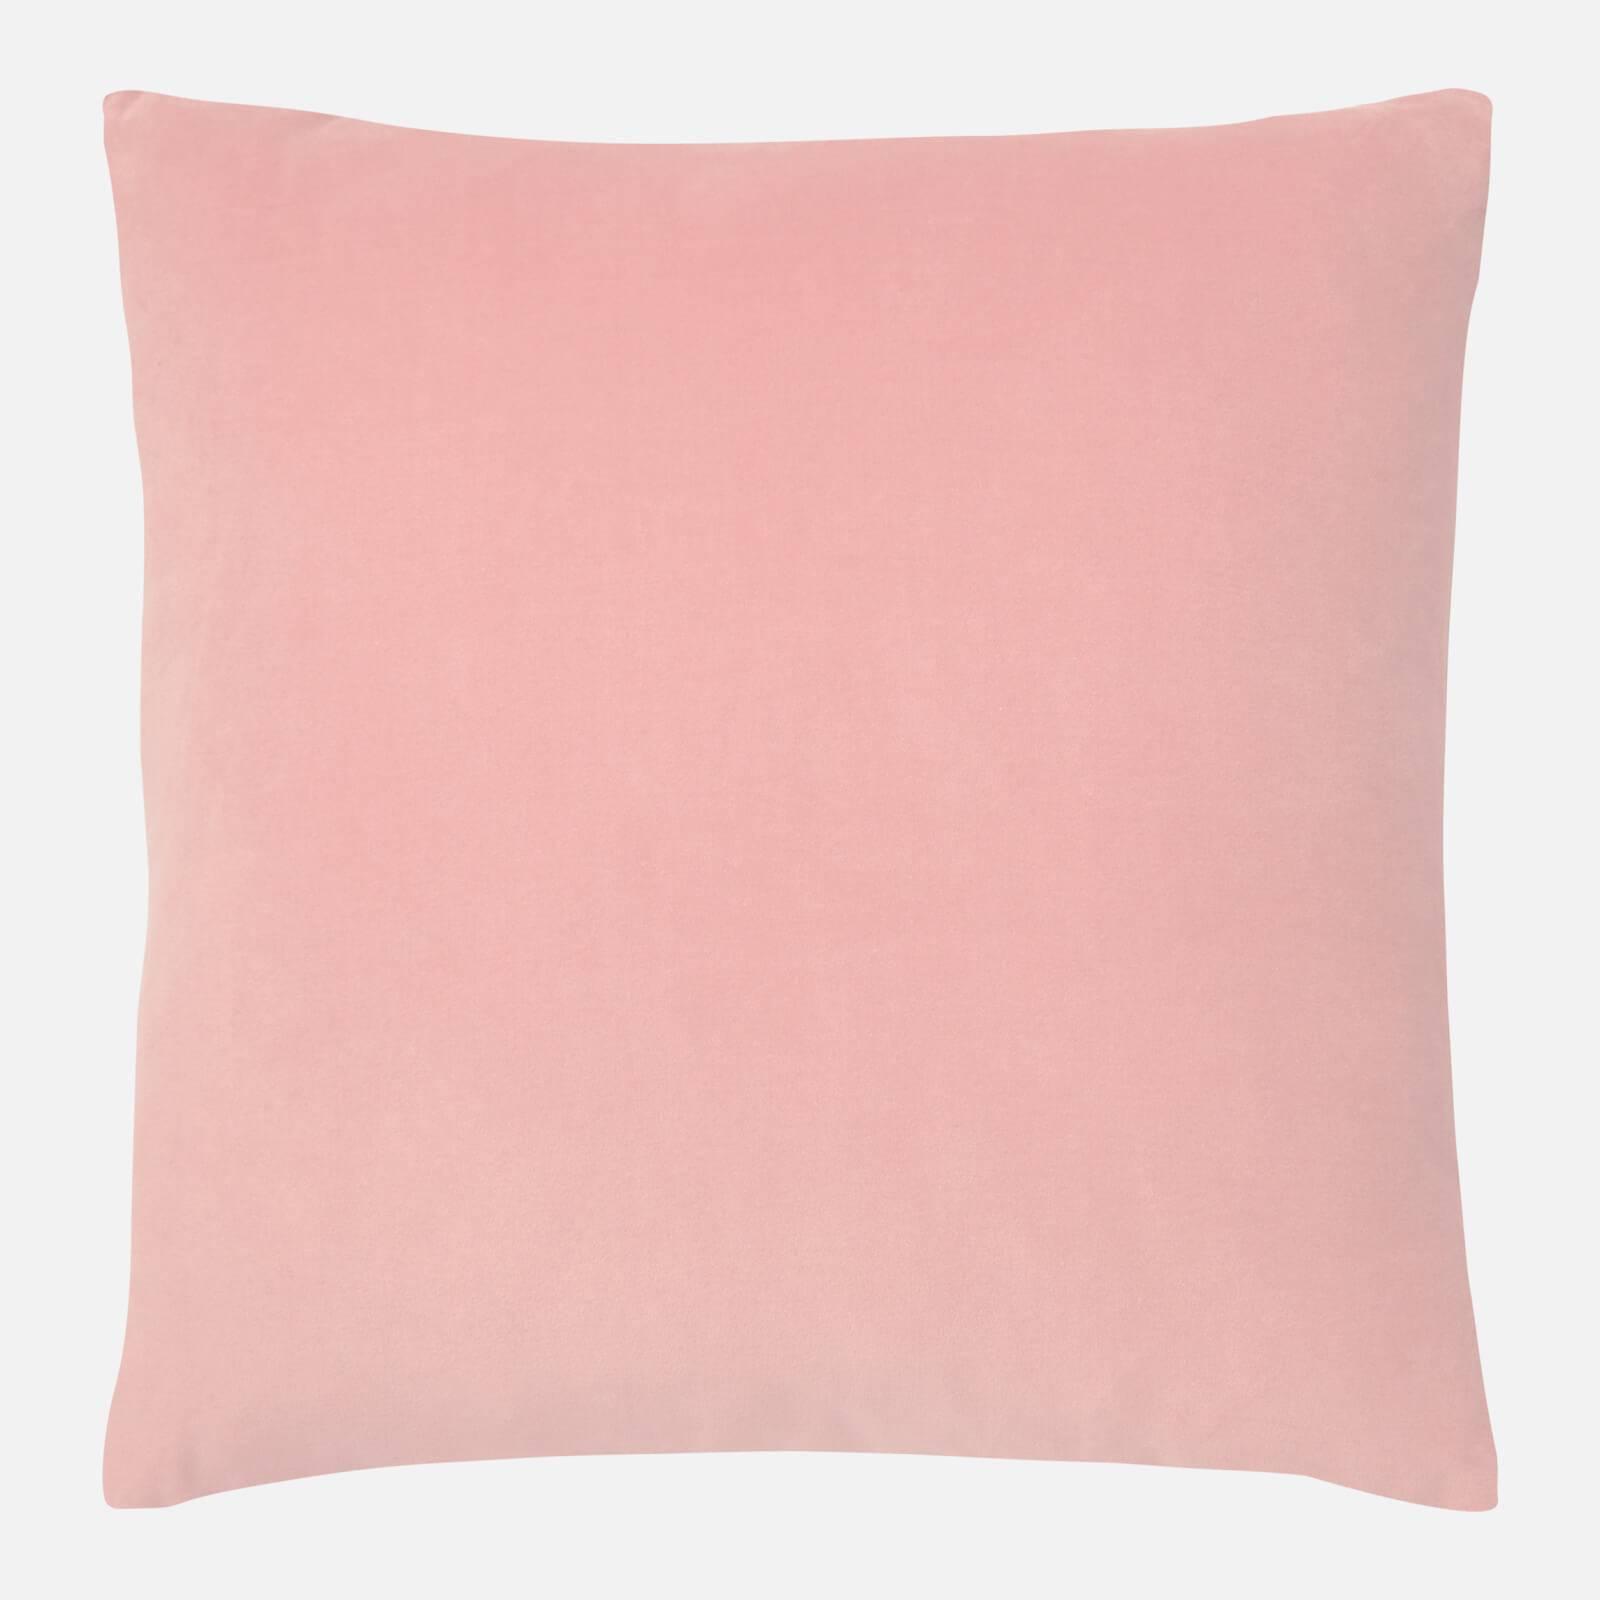 in homeware Cotton Velvet Cushion - Pink